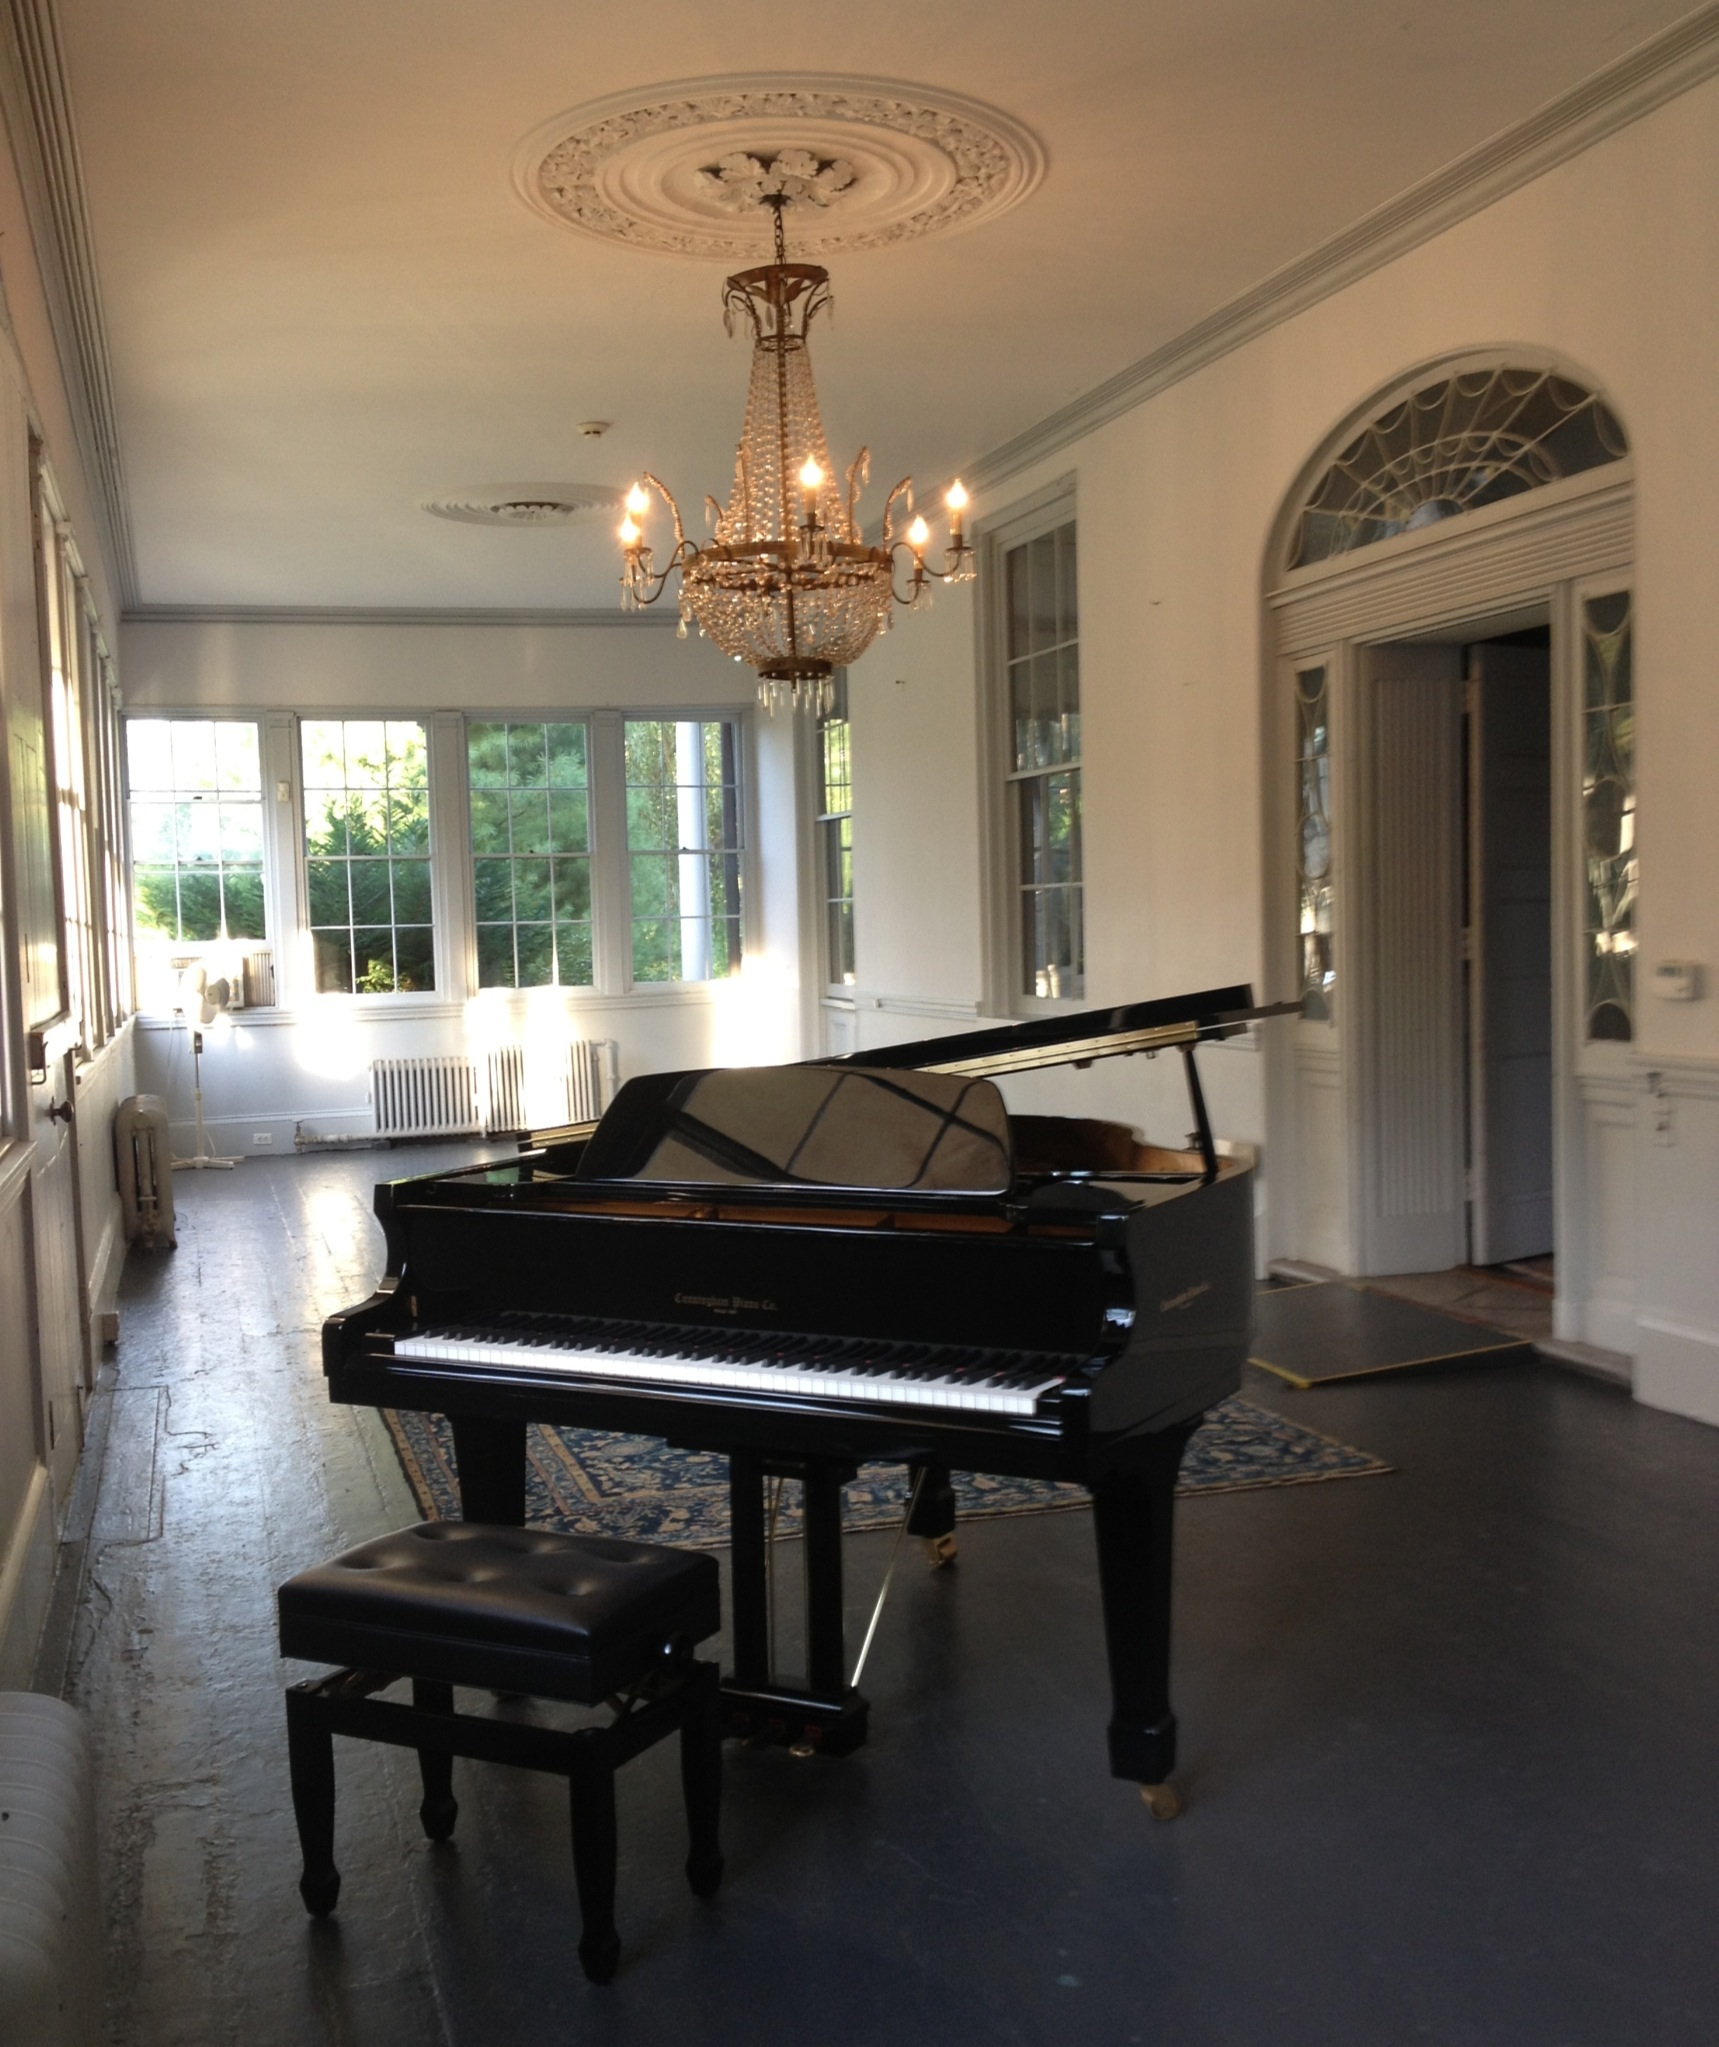 Baby Grand Piano in Veranda 2015